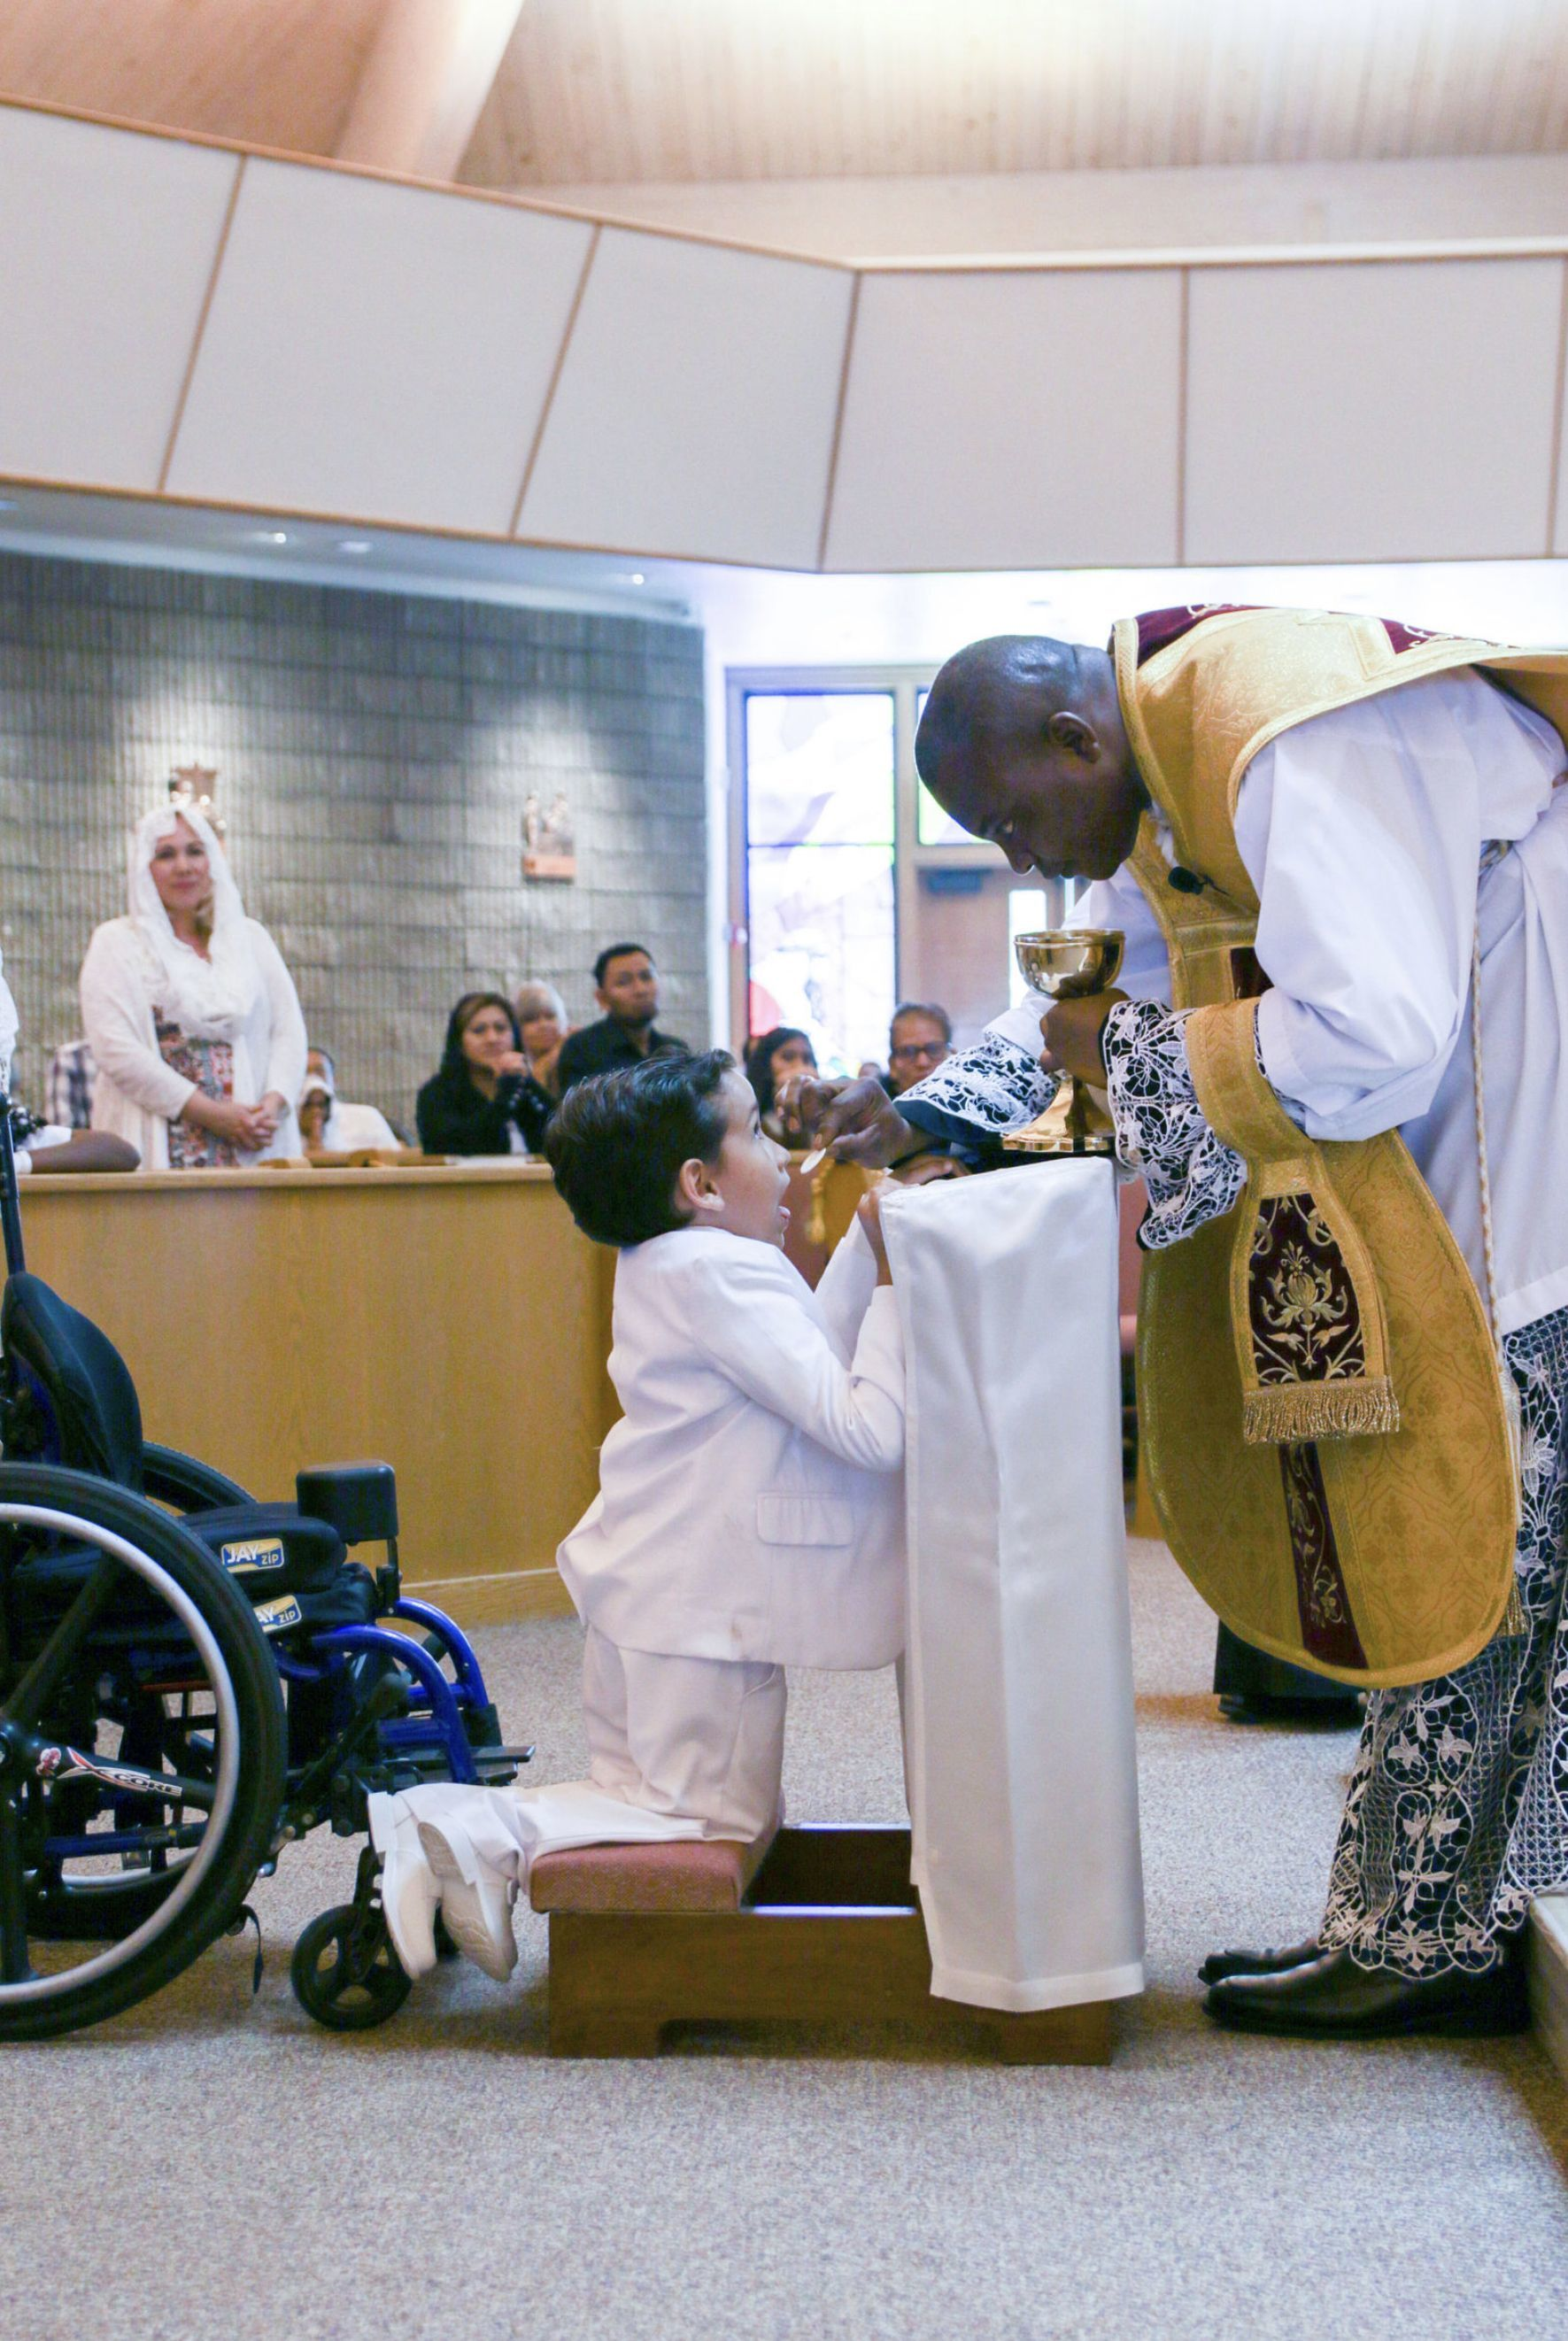 Congregation for the Latin Mass grows to include 11 first communicants